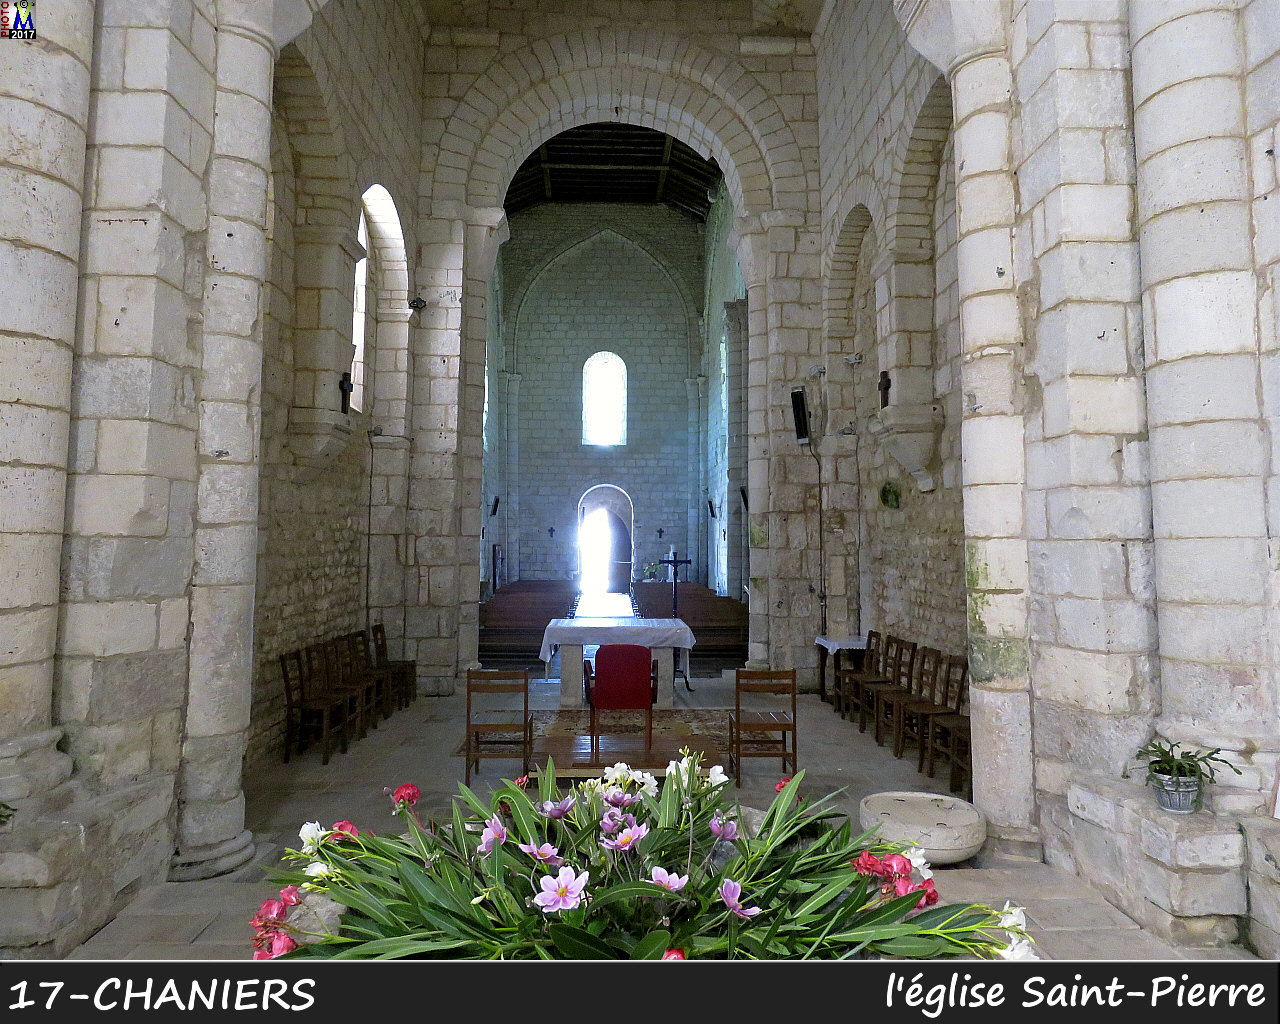 17CHANIERS_eglise_1102.jpg